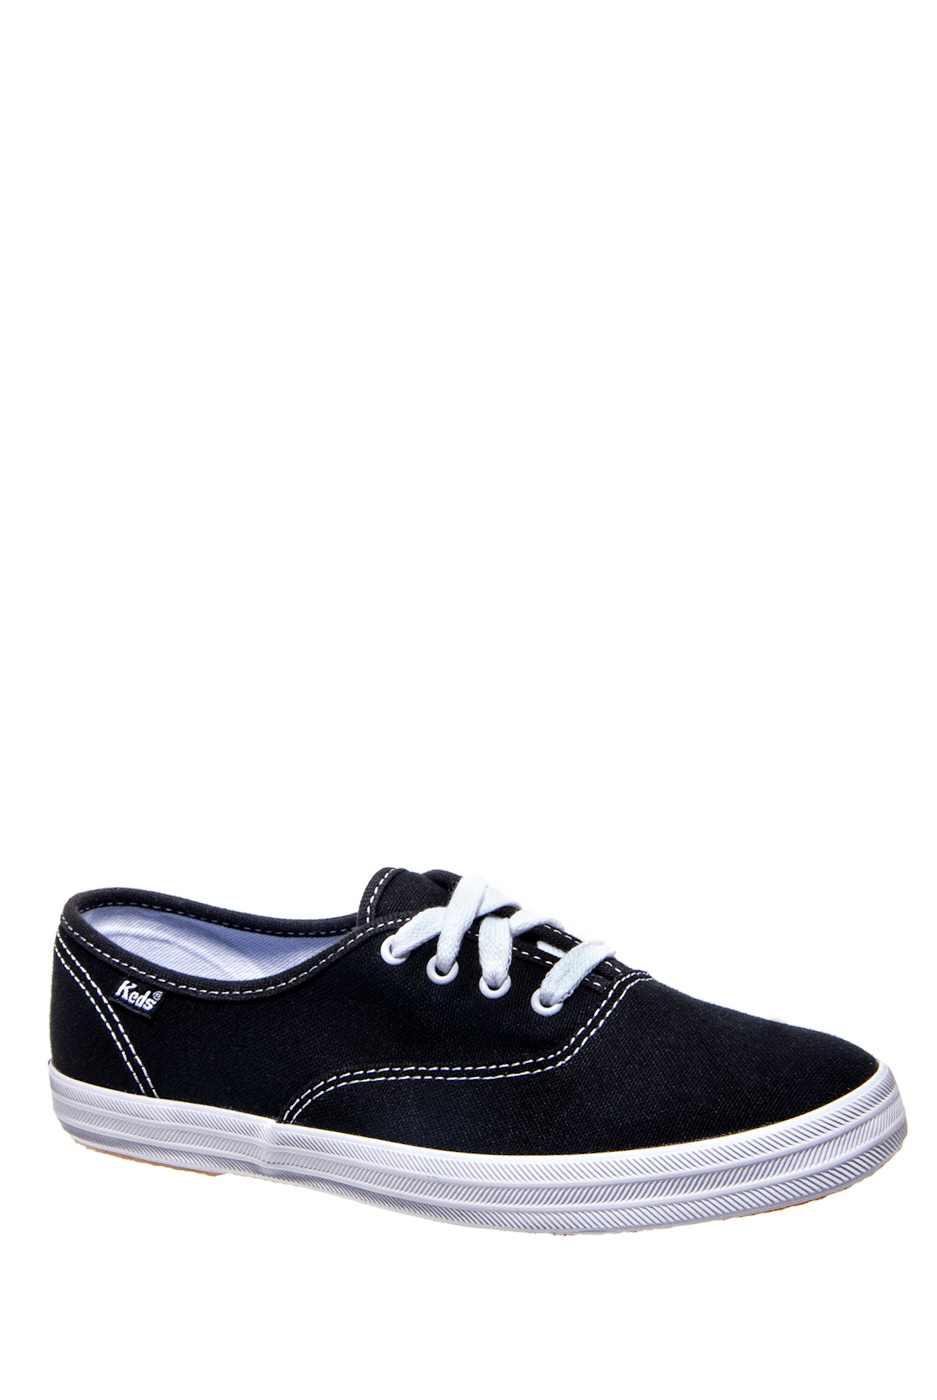 KEDS Champion Black Canvas Low Top Sneakers - Black